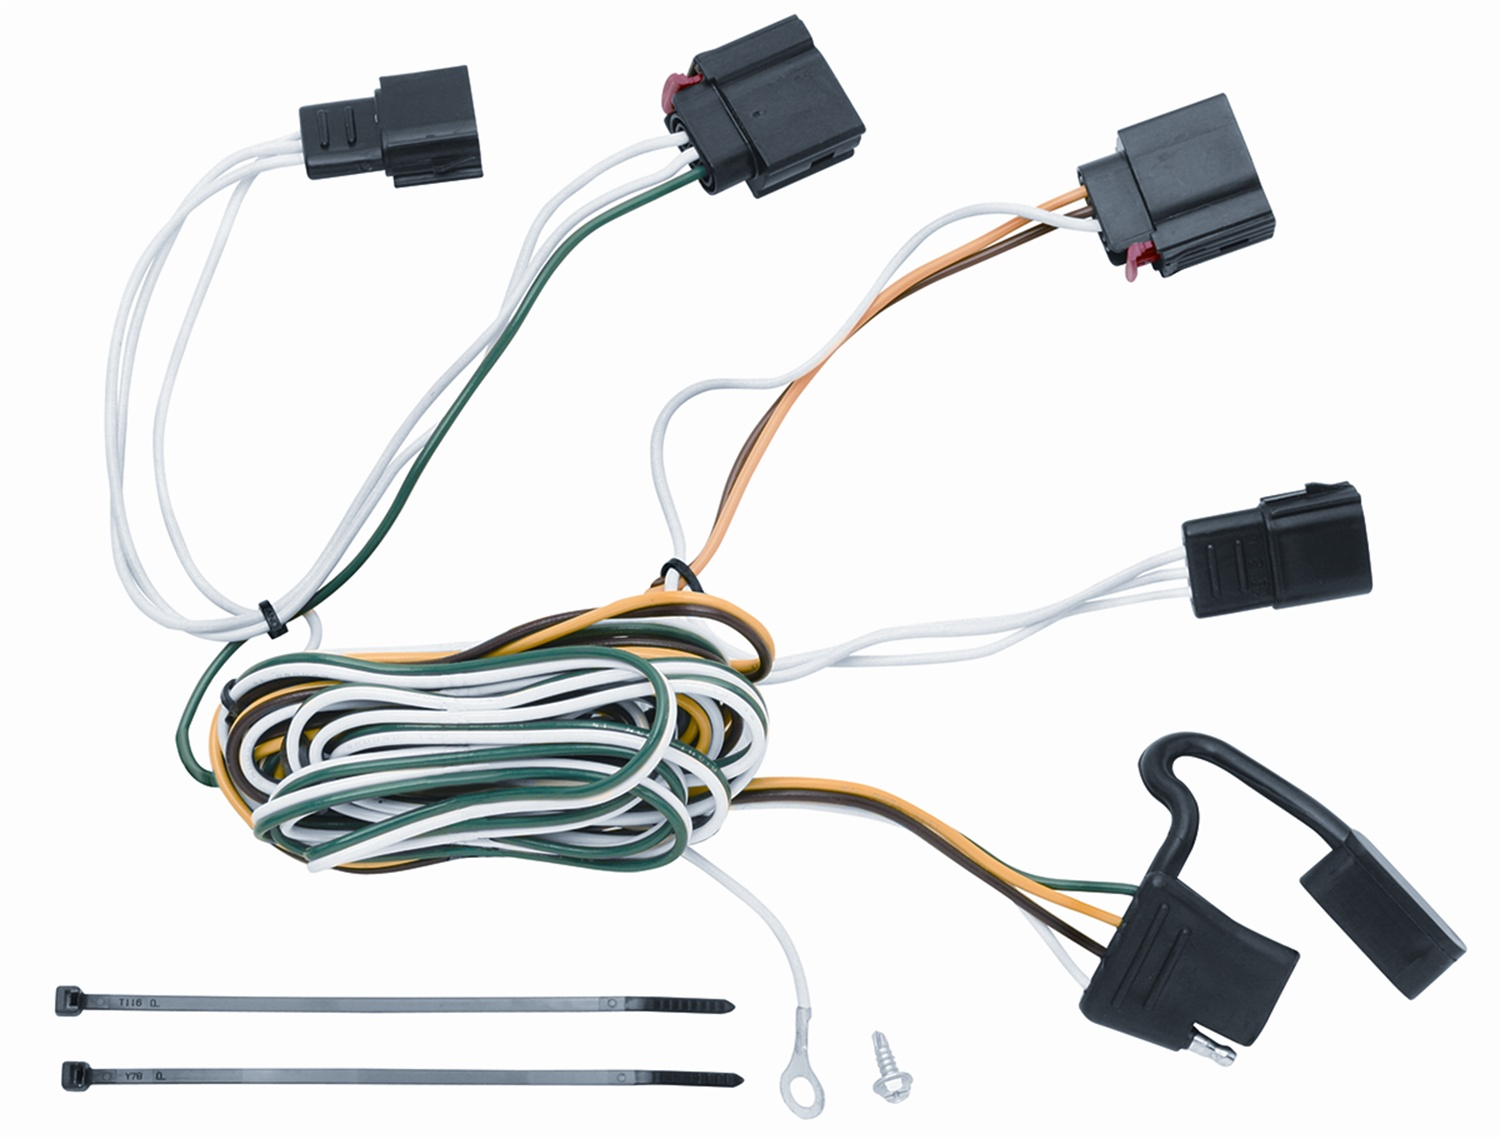 hight resolution of vehicle to trailer wiring harness connector for 07 12 jeep grand cherokee walmart com